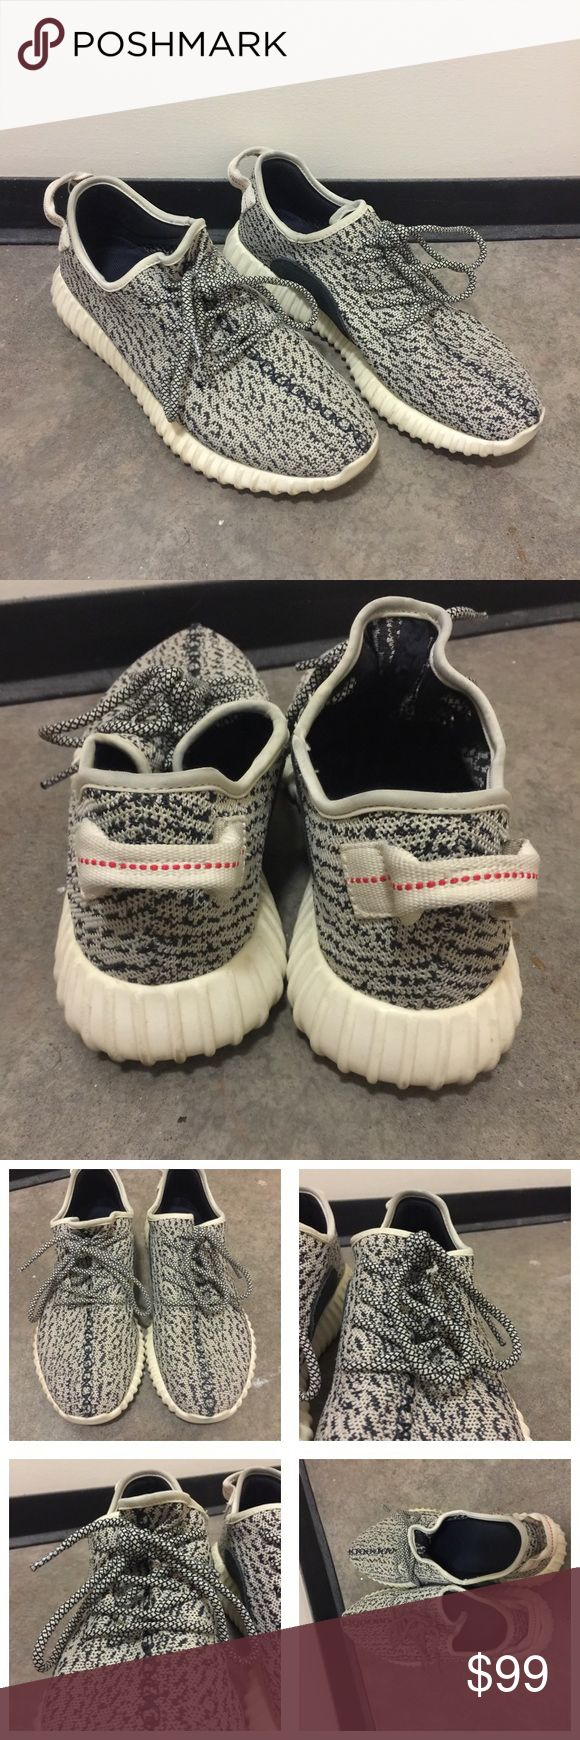 Authentic Turtle Dove Adidas Yeezy Boost 350 These Authentic Turtle Dove Adidas Yeezy Boost 350s are the perfect addition to anyone's sneaker collection. These shoes feature Adidas signature Boost technology making these shoes extremely comfortable. They have been worn, so there are some marks on the soles of the shoes. The original box has been recycled with the Foot Locker receipt, so it doesn't not include those. You'll only be receiving the pair of shoes. Yeezy Shoes Sneakers